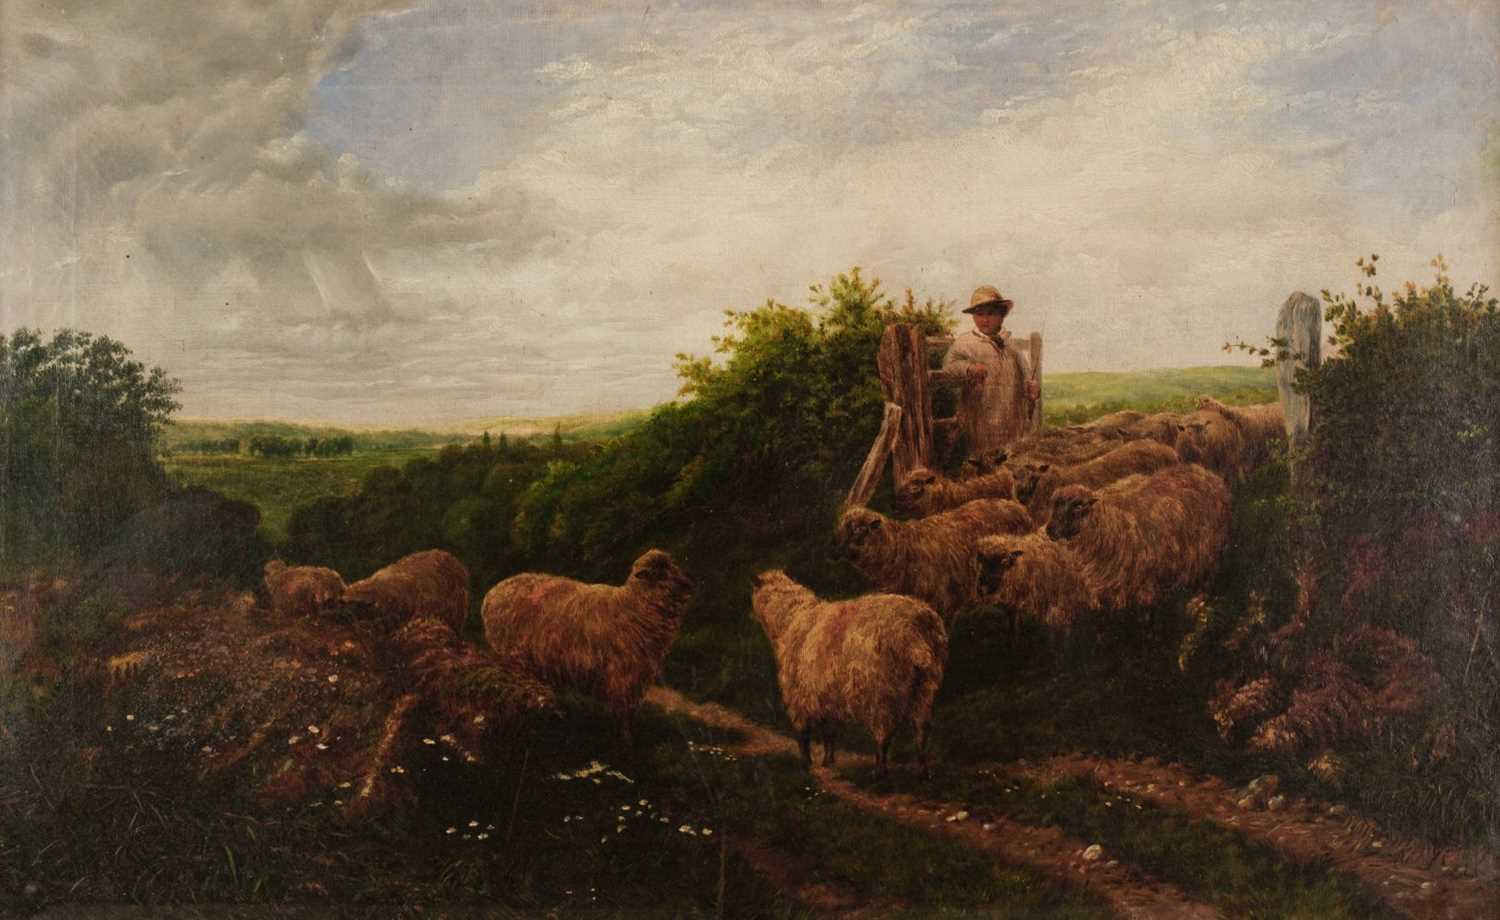 Lot 335 - English School (mid-19th century). Rural landscape with shepherd and flock